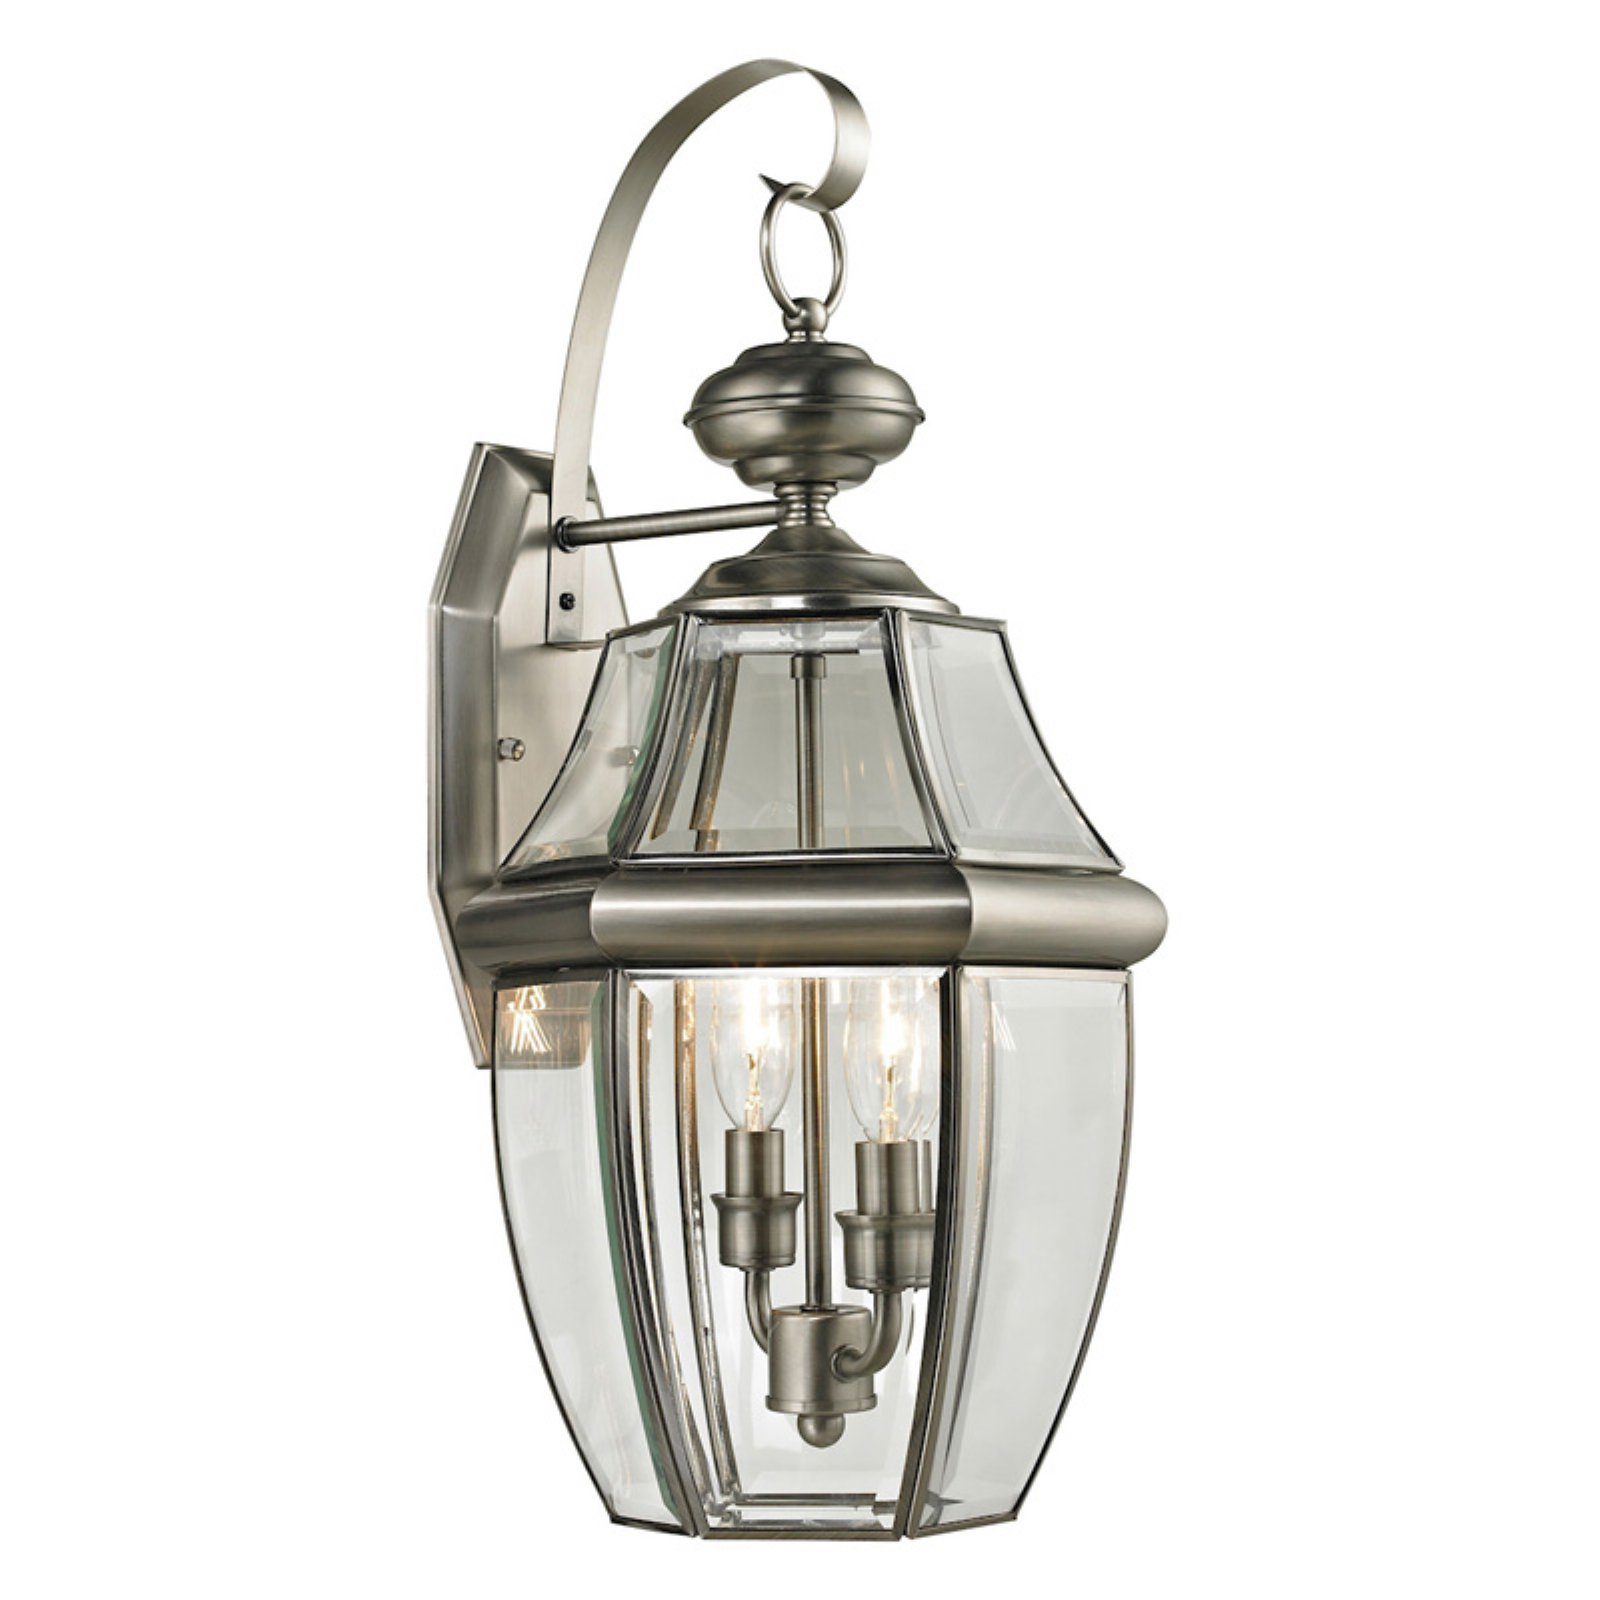 Thomas Lighting Ashford 8602 Armed Outdoor Wall Sconce